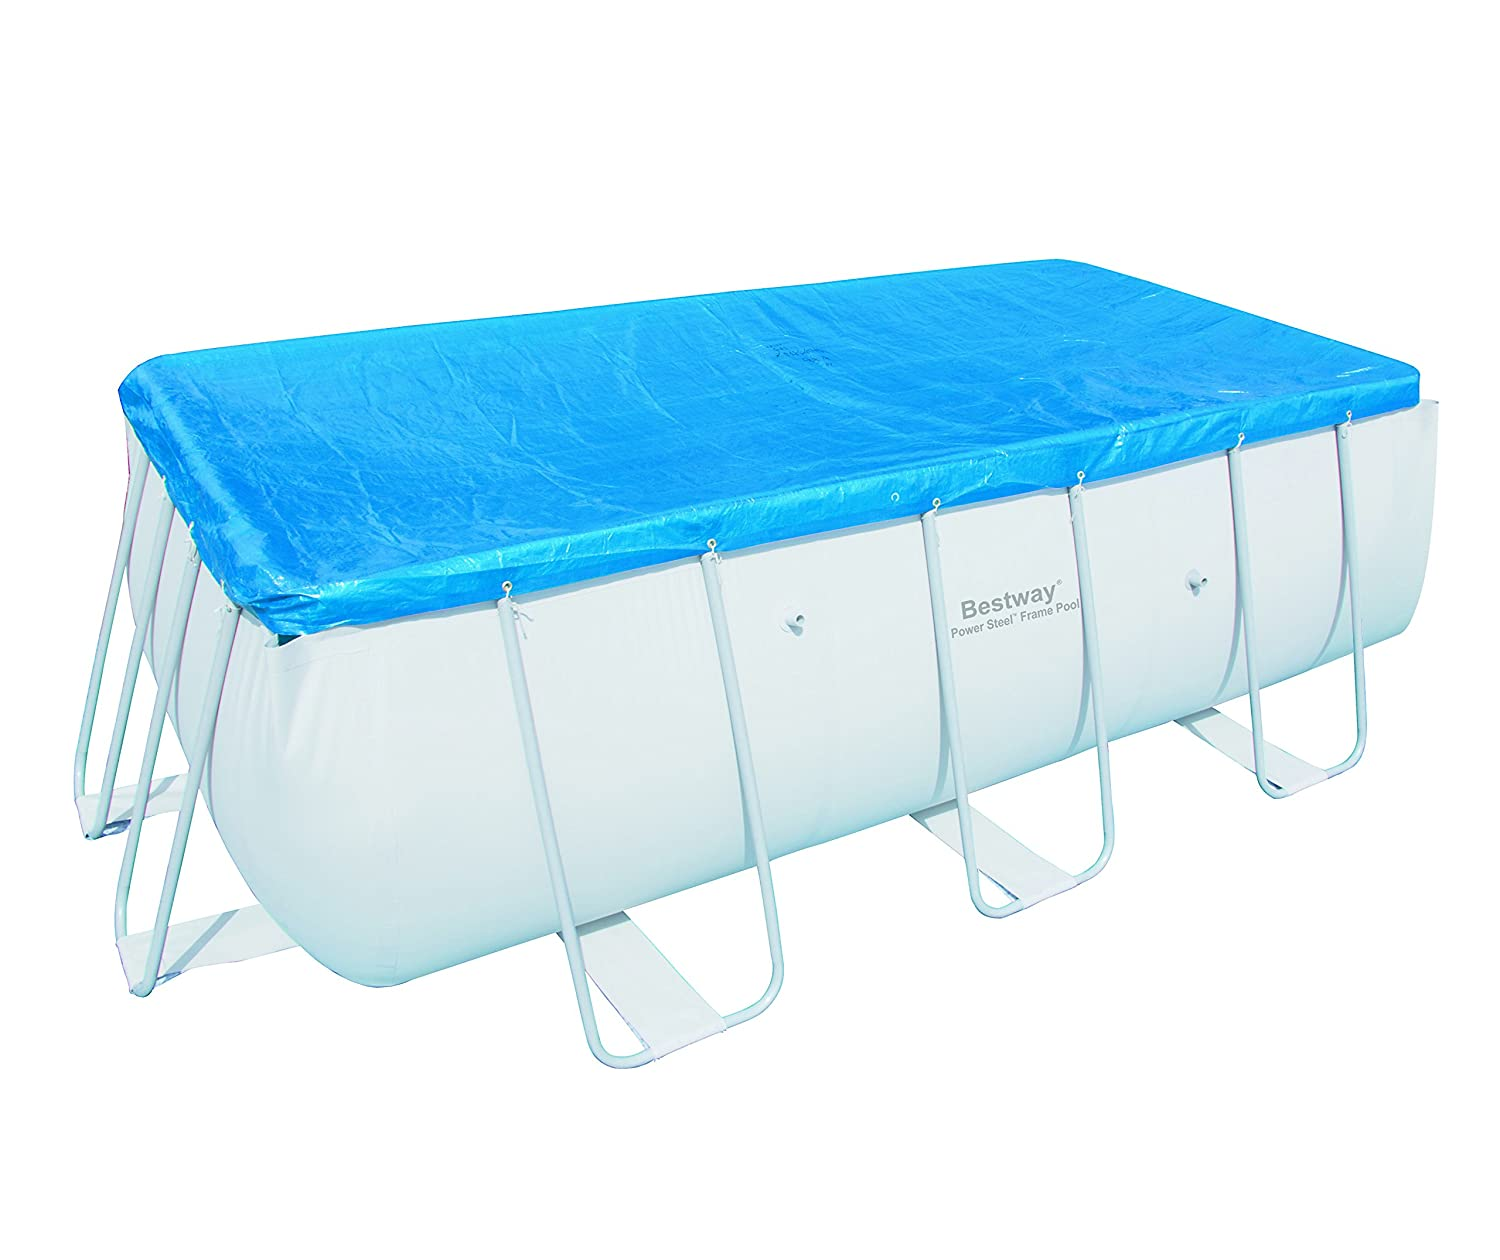 Piscine bestway rectangulaire for Piscine rectangulaire bestway